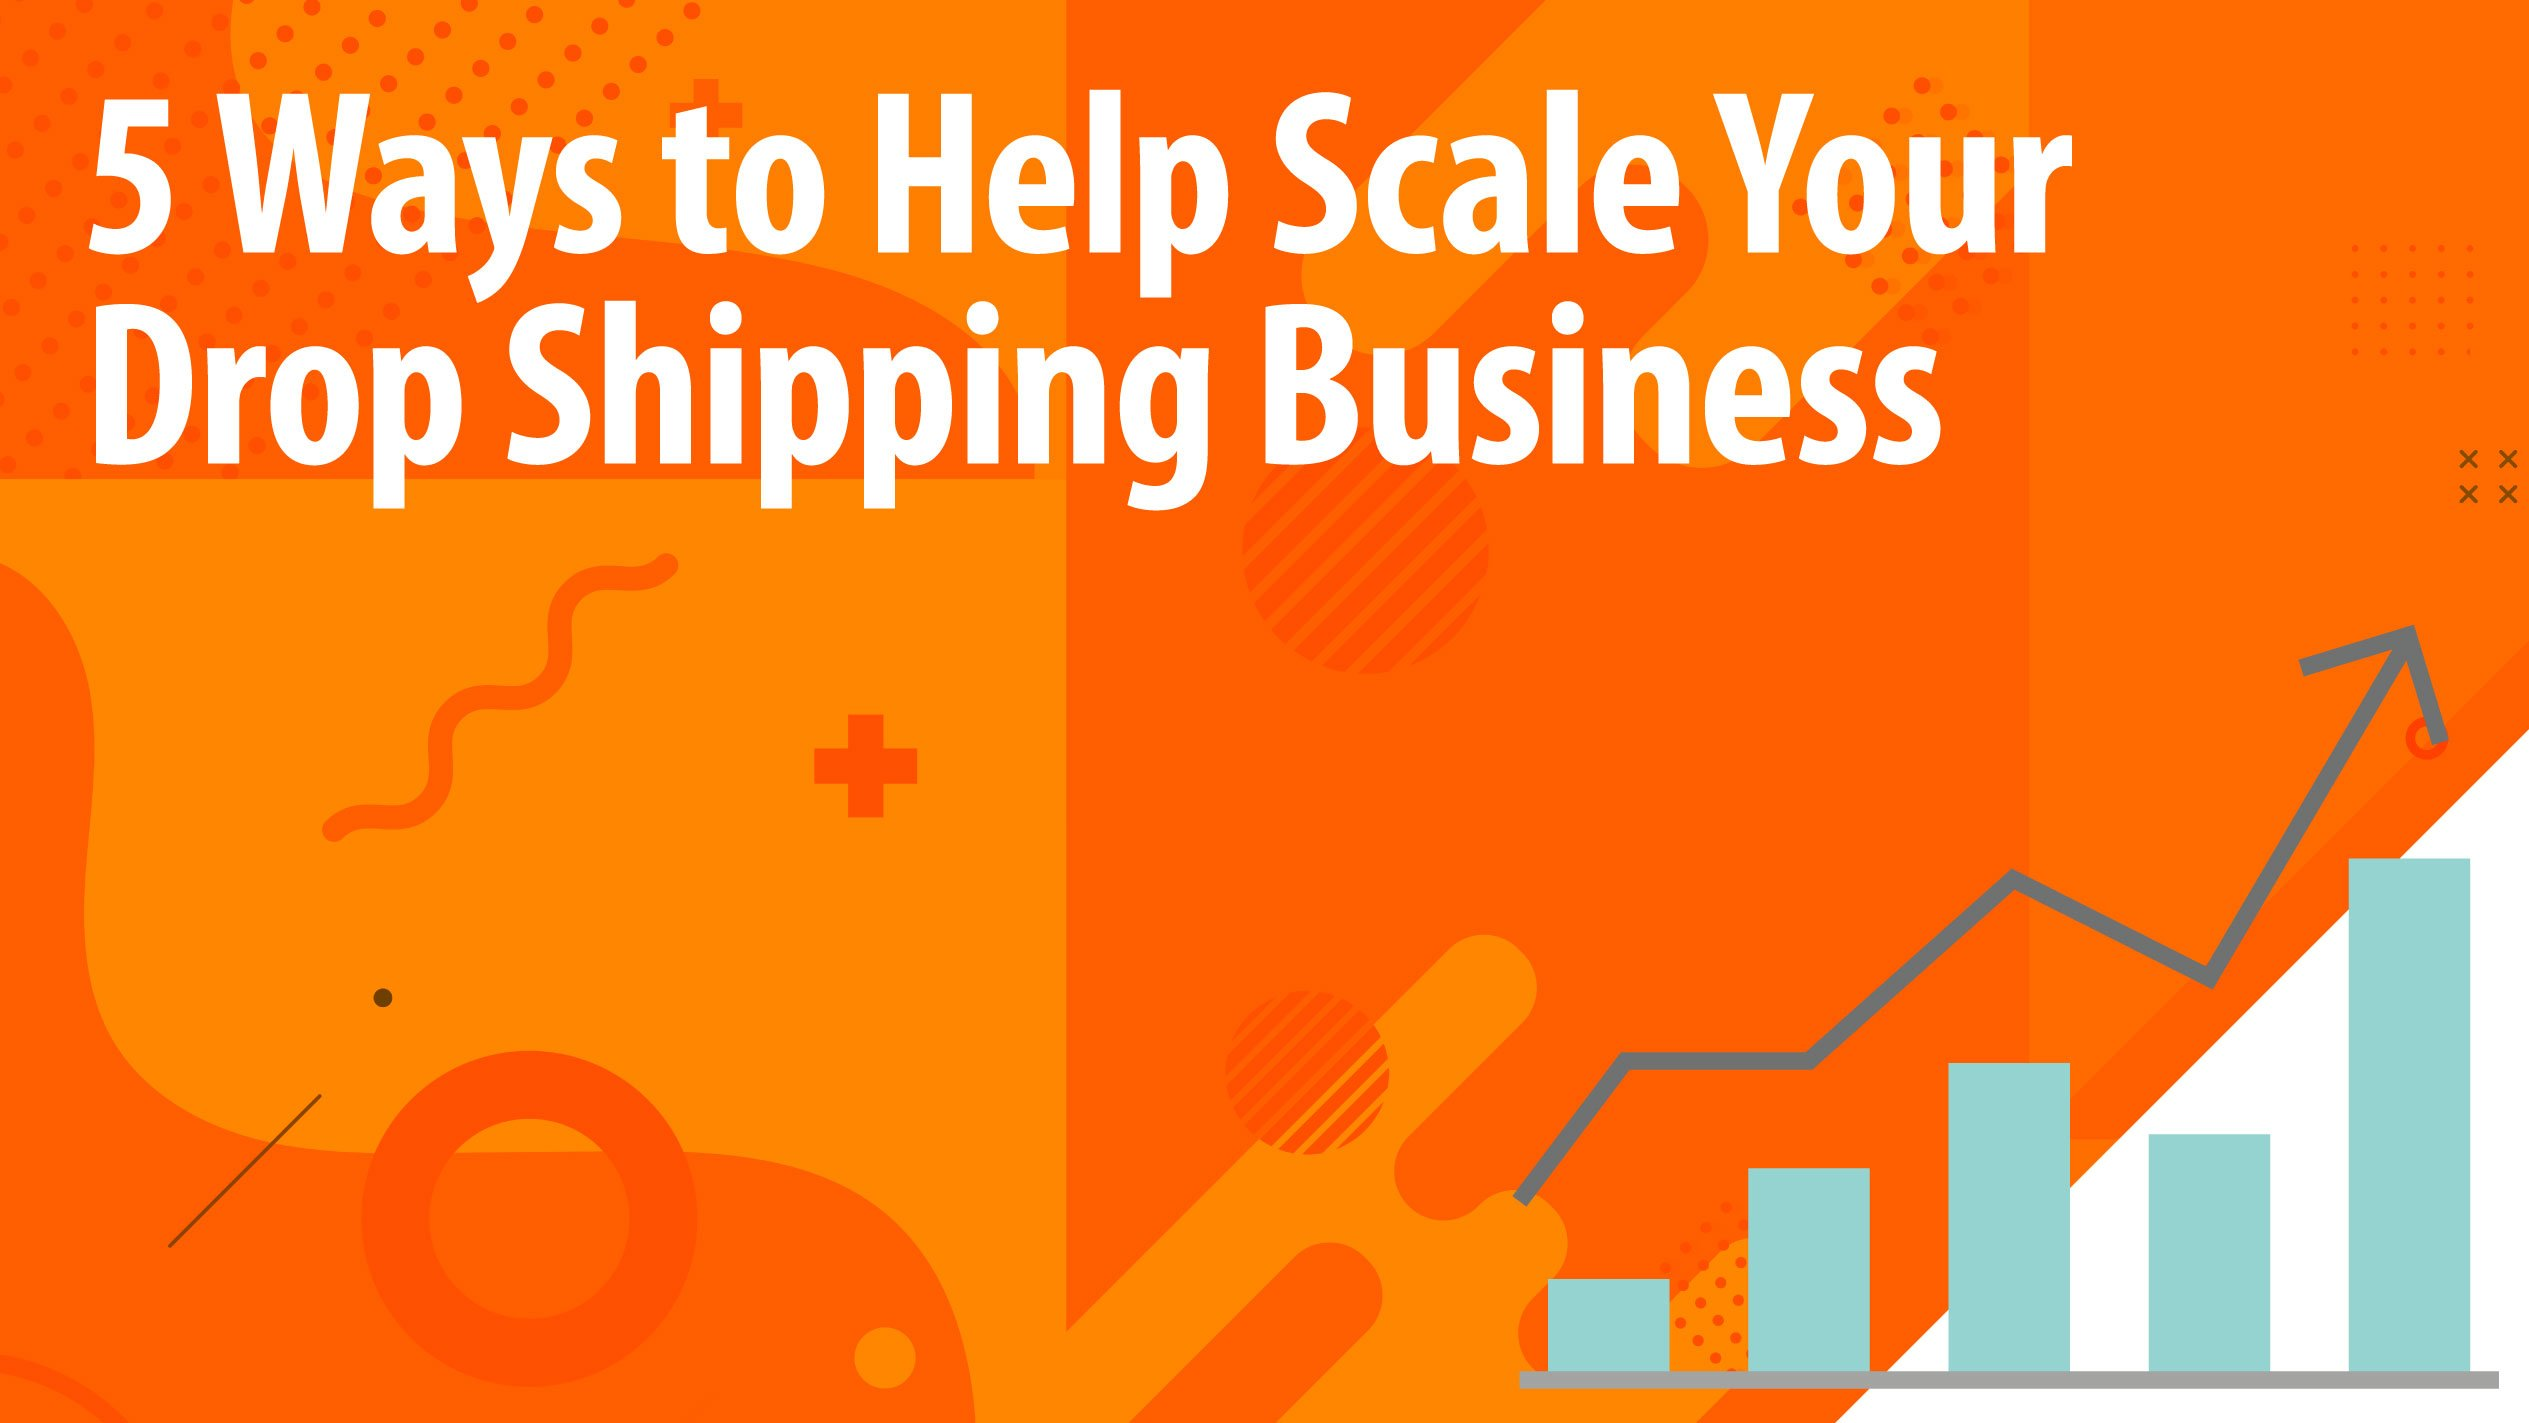 5 Ways to Help Scale Your Drop Shipping Business